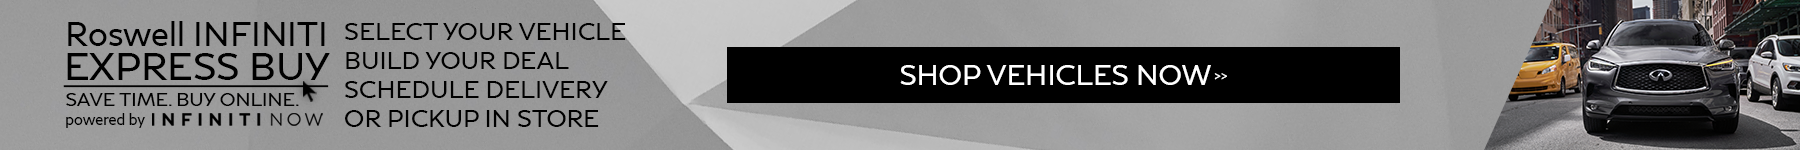 Shop & Purchase from home with Roswell INFINITI Express Buy